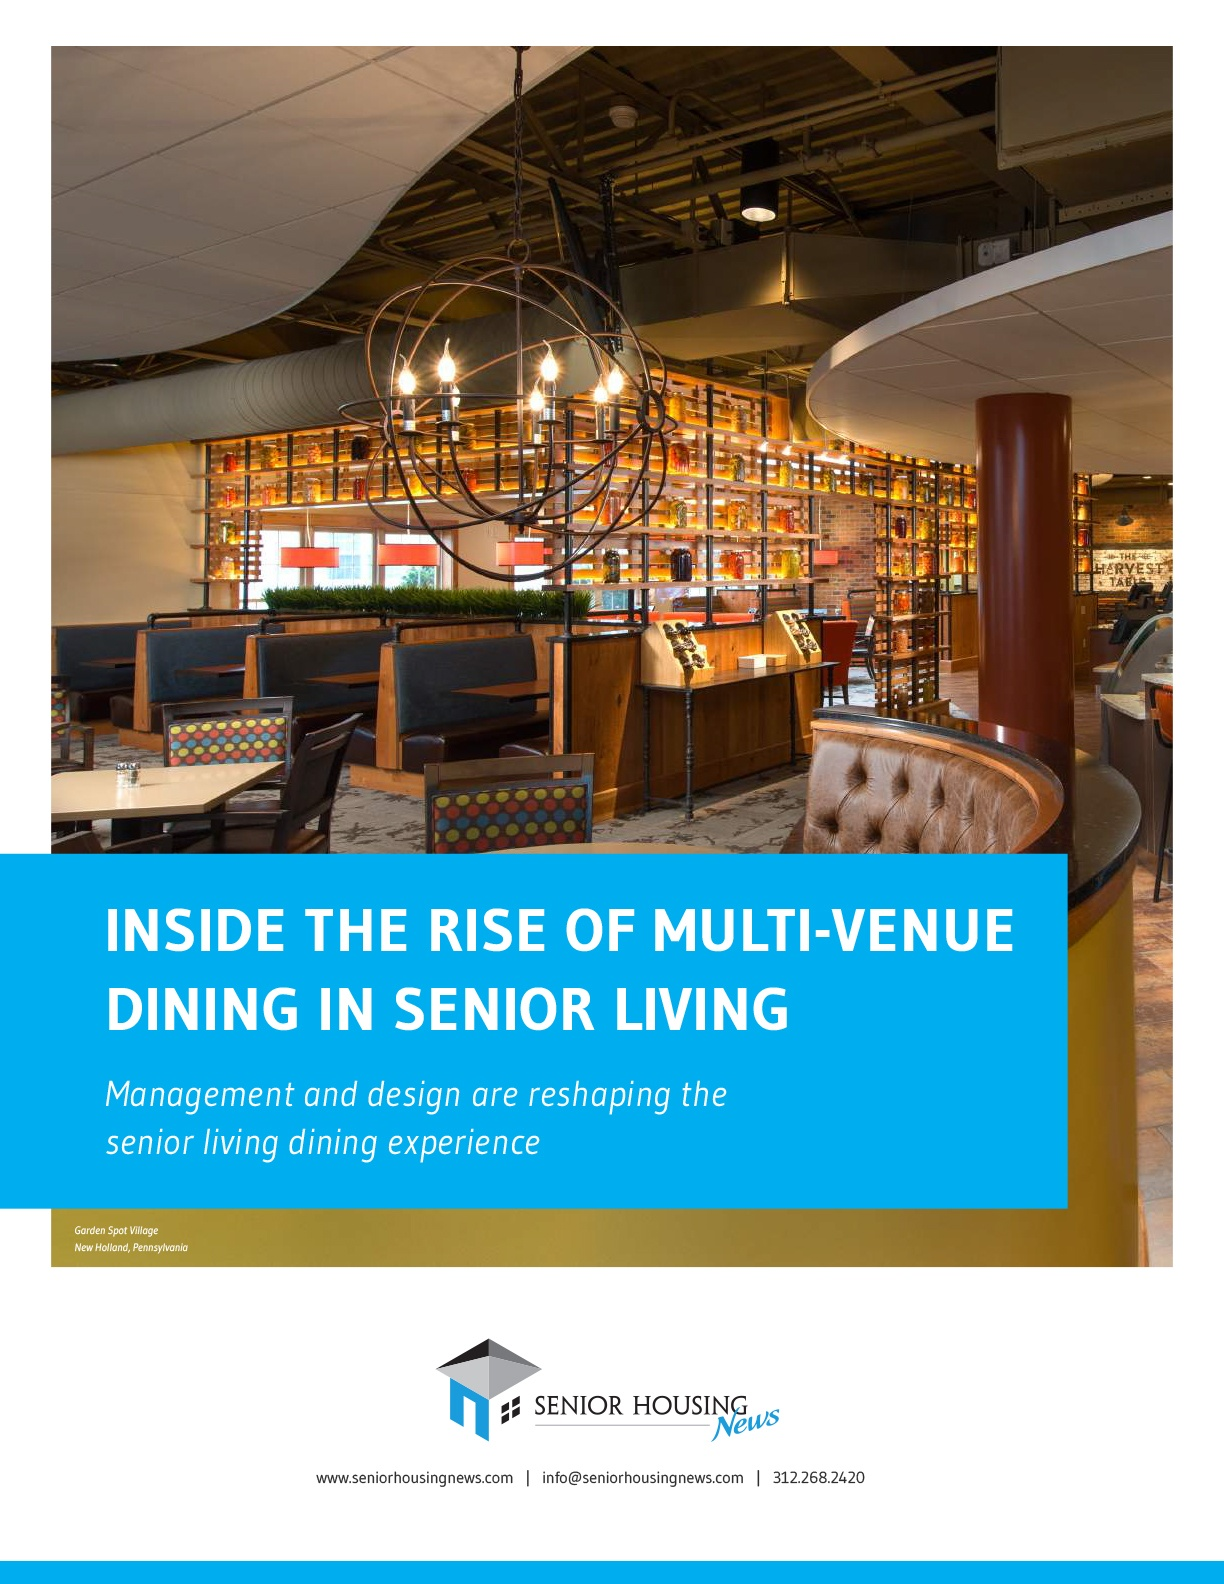 Inside The Rise of Multi-Venue Dining In Senior Living